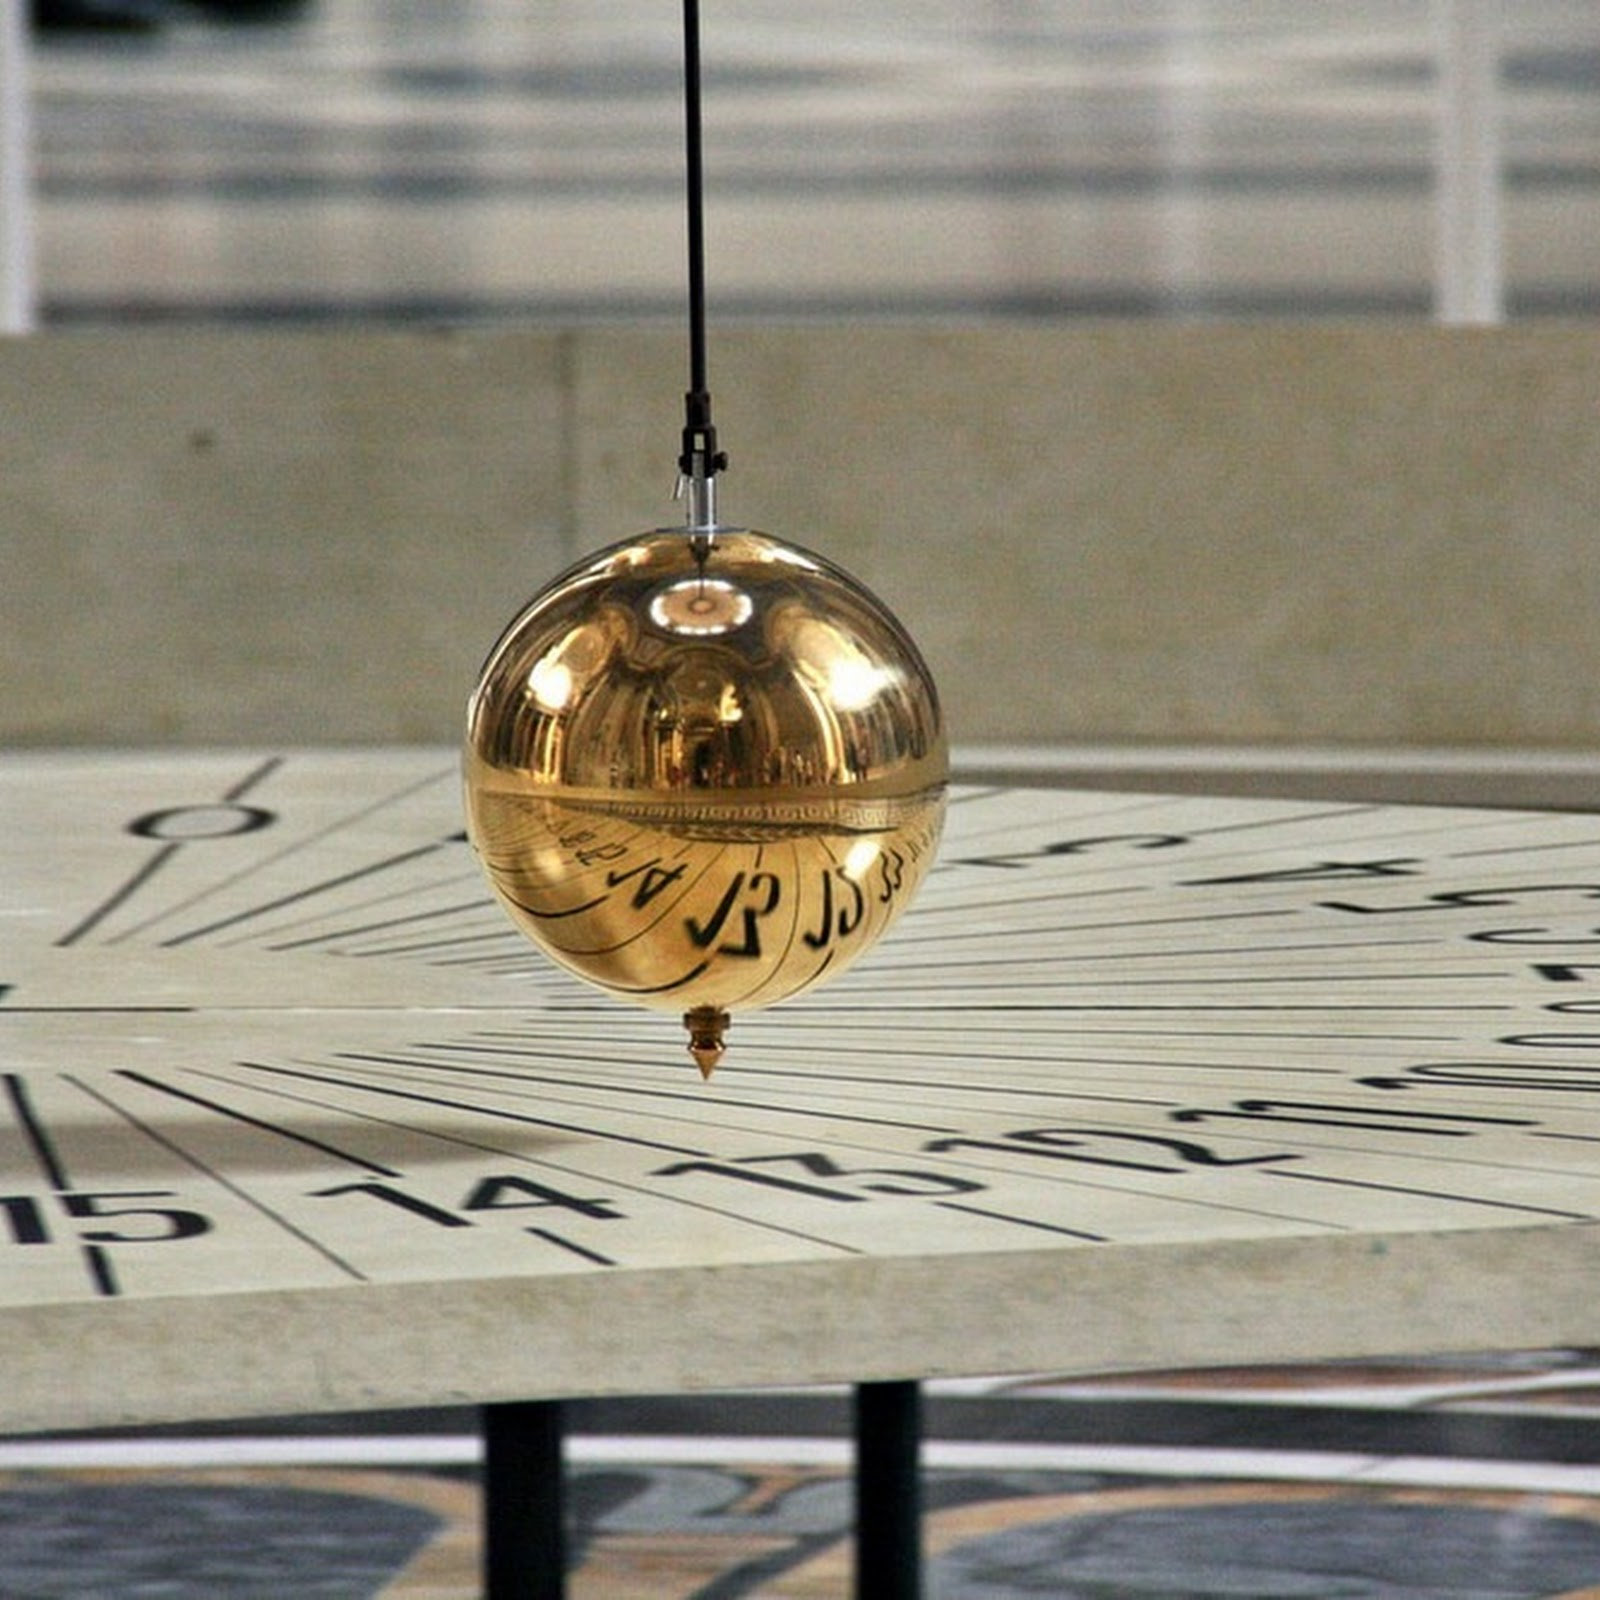 Foucault Pendulum And The Pantheon